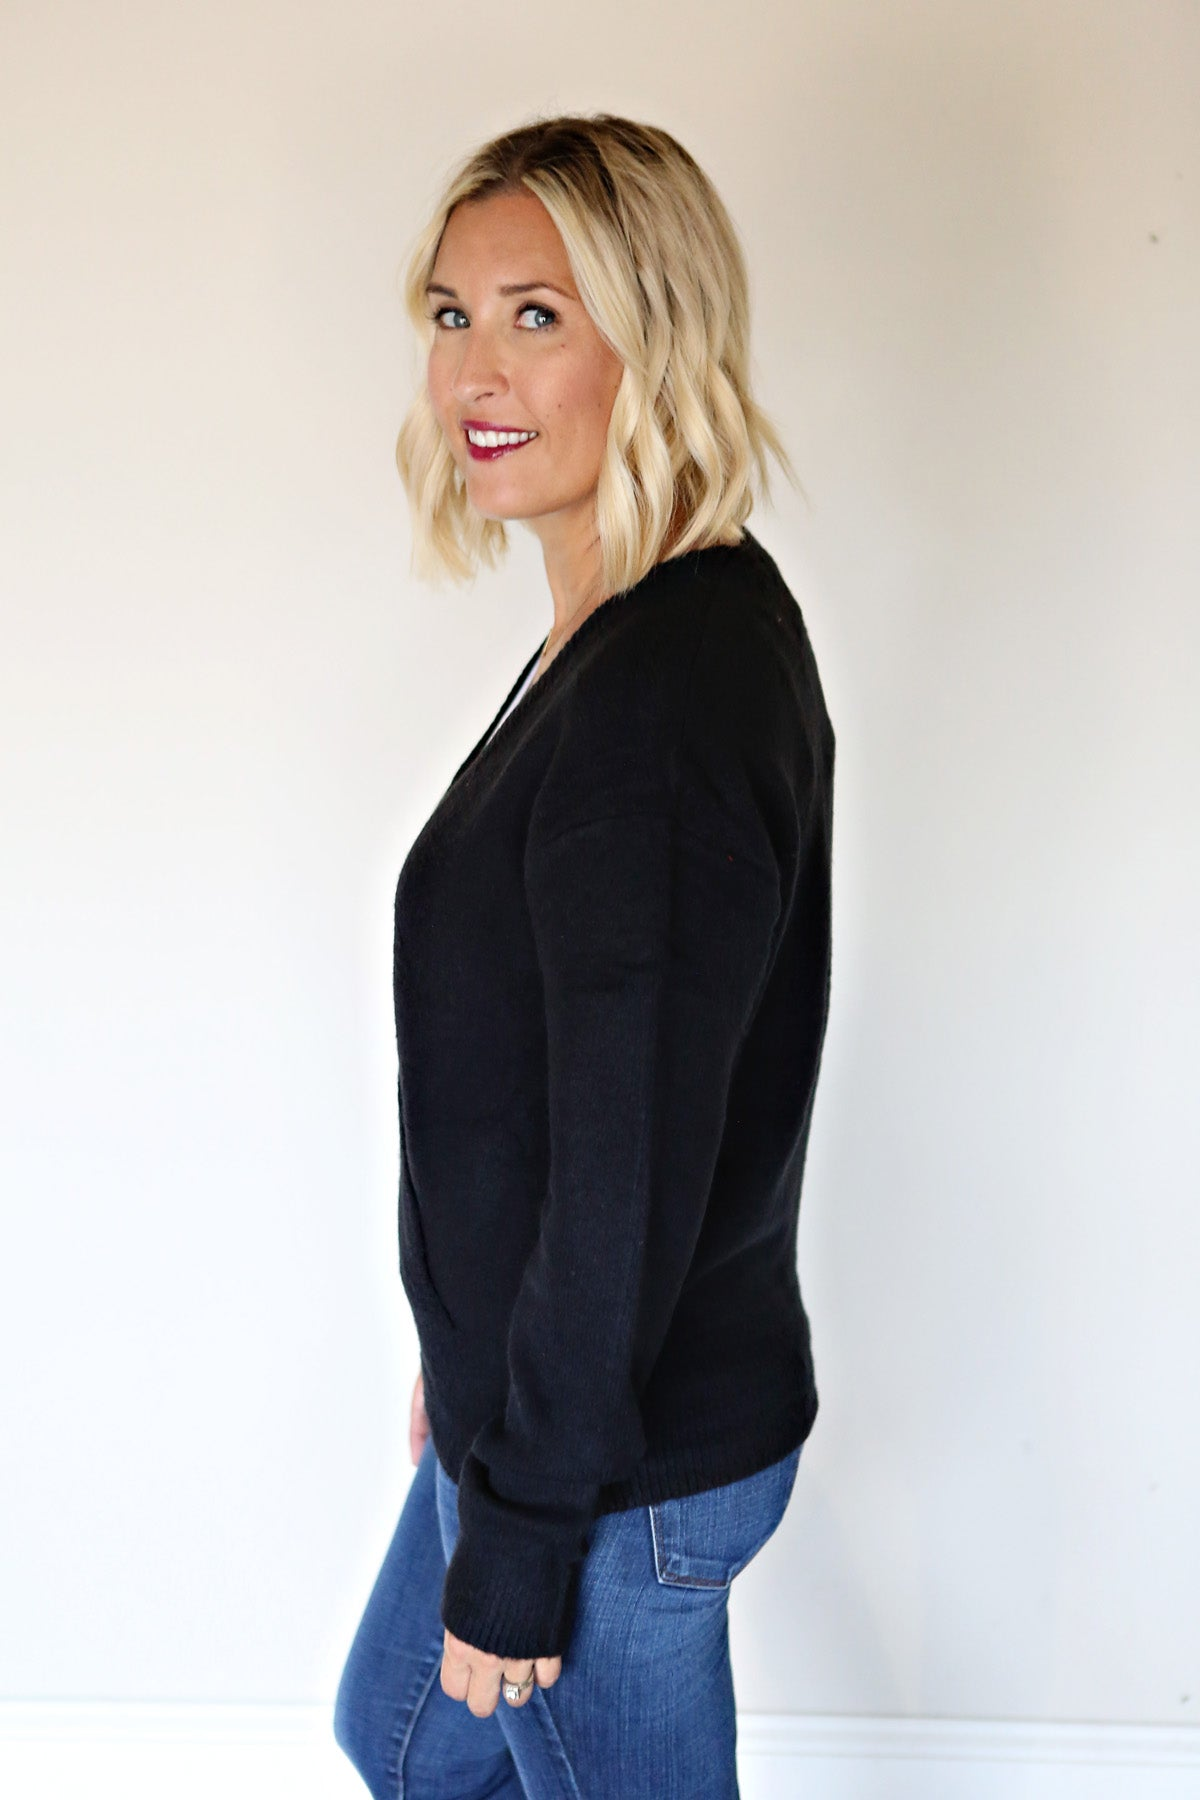 Bernadette Sweater - Gray Monroe